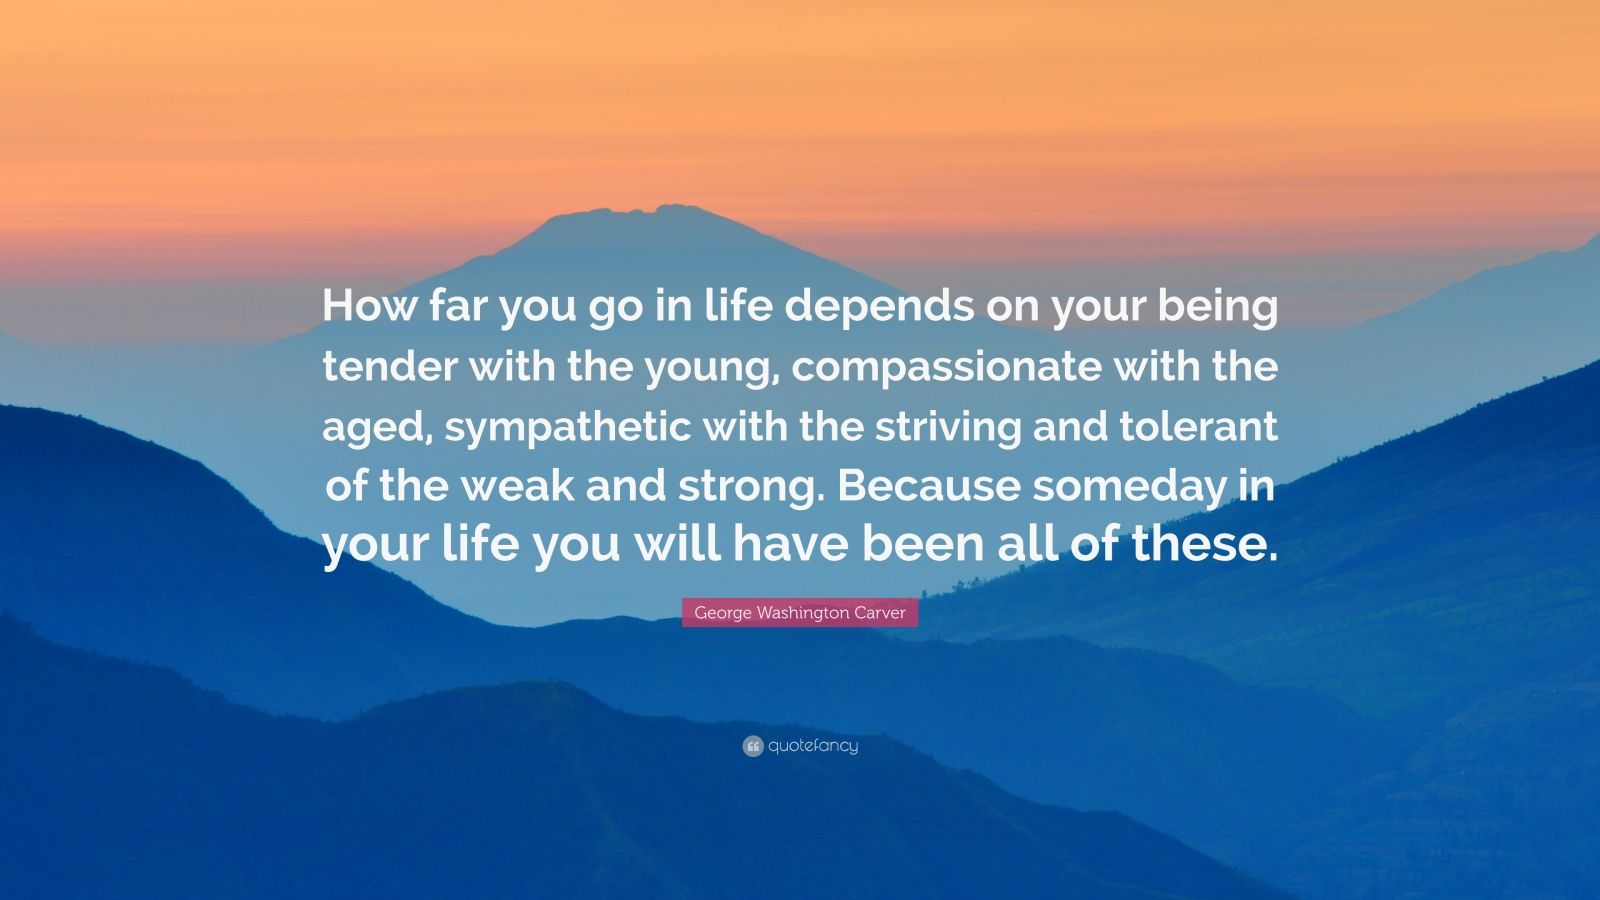 "George Washington Carver Quote: ""How far you go in life depends on your being tender with the young, compassionate with the aged, sympathetic with the striving and tolerant of the weak and strong. Because someday in your life you will have been all of these."""